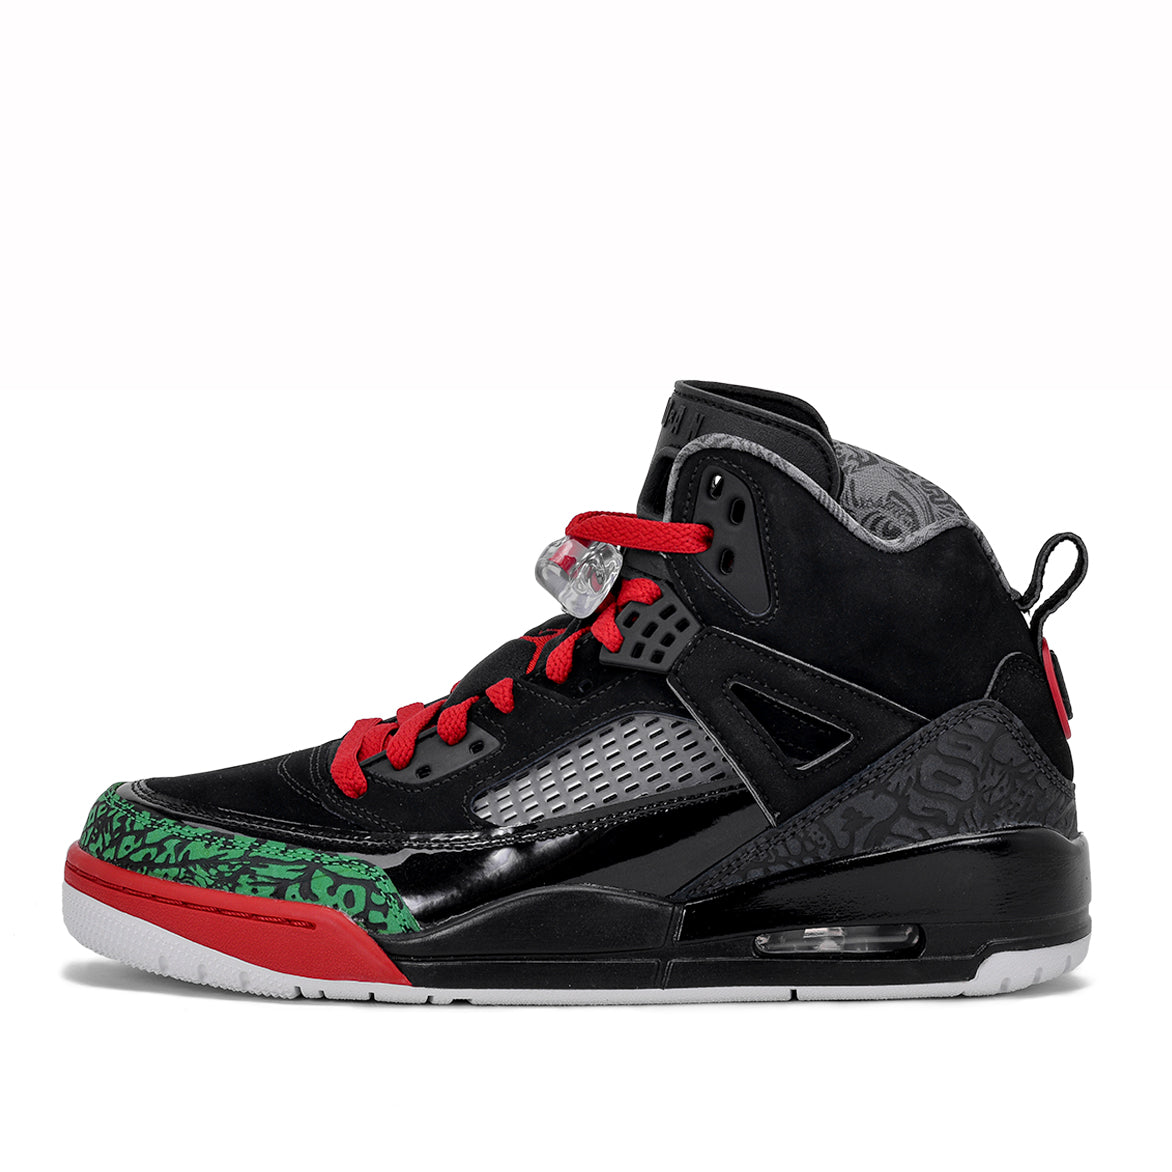 4946e6aaad3 JORDAN SPIZ'IKE - BLACK / VARSITY RED - CLASSIC GREEN | City Blue